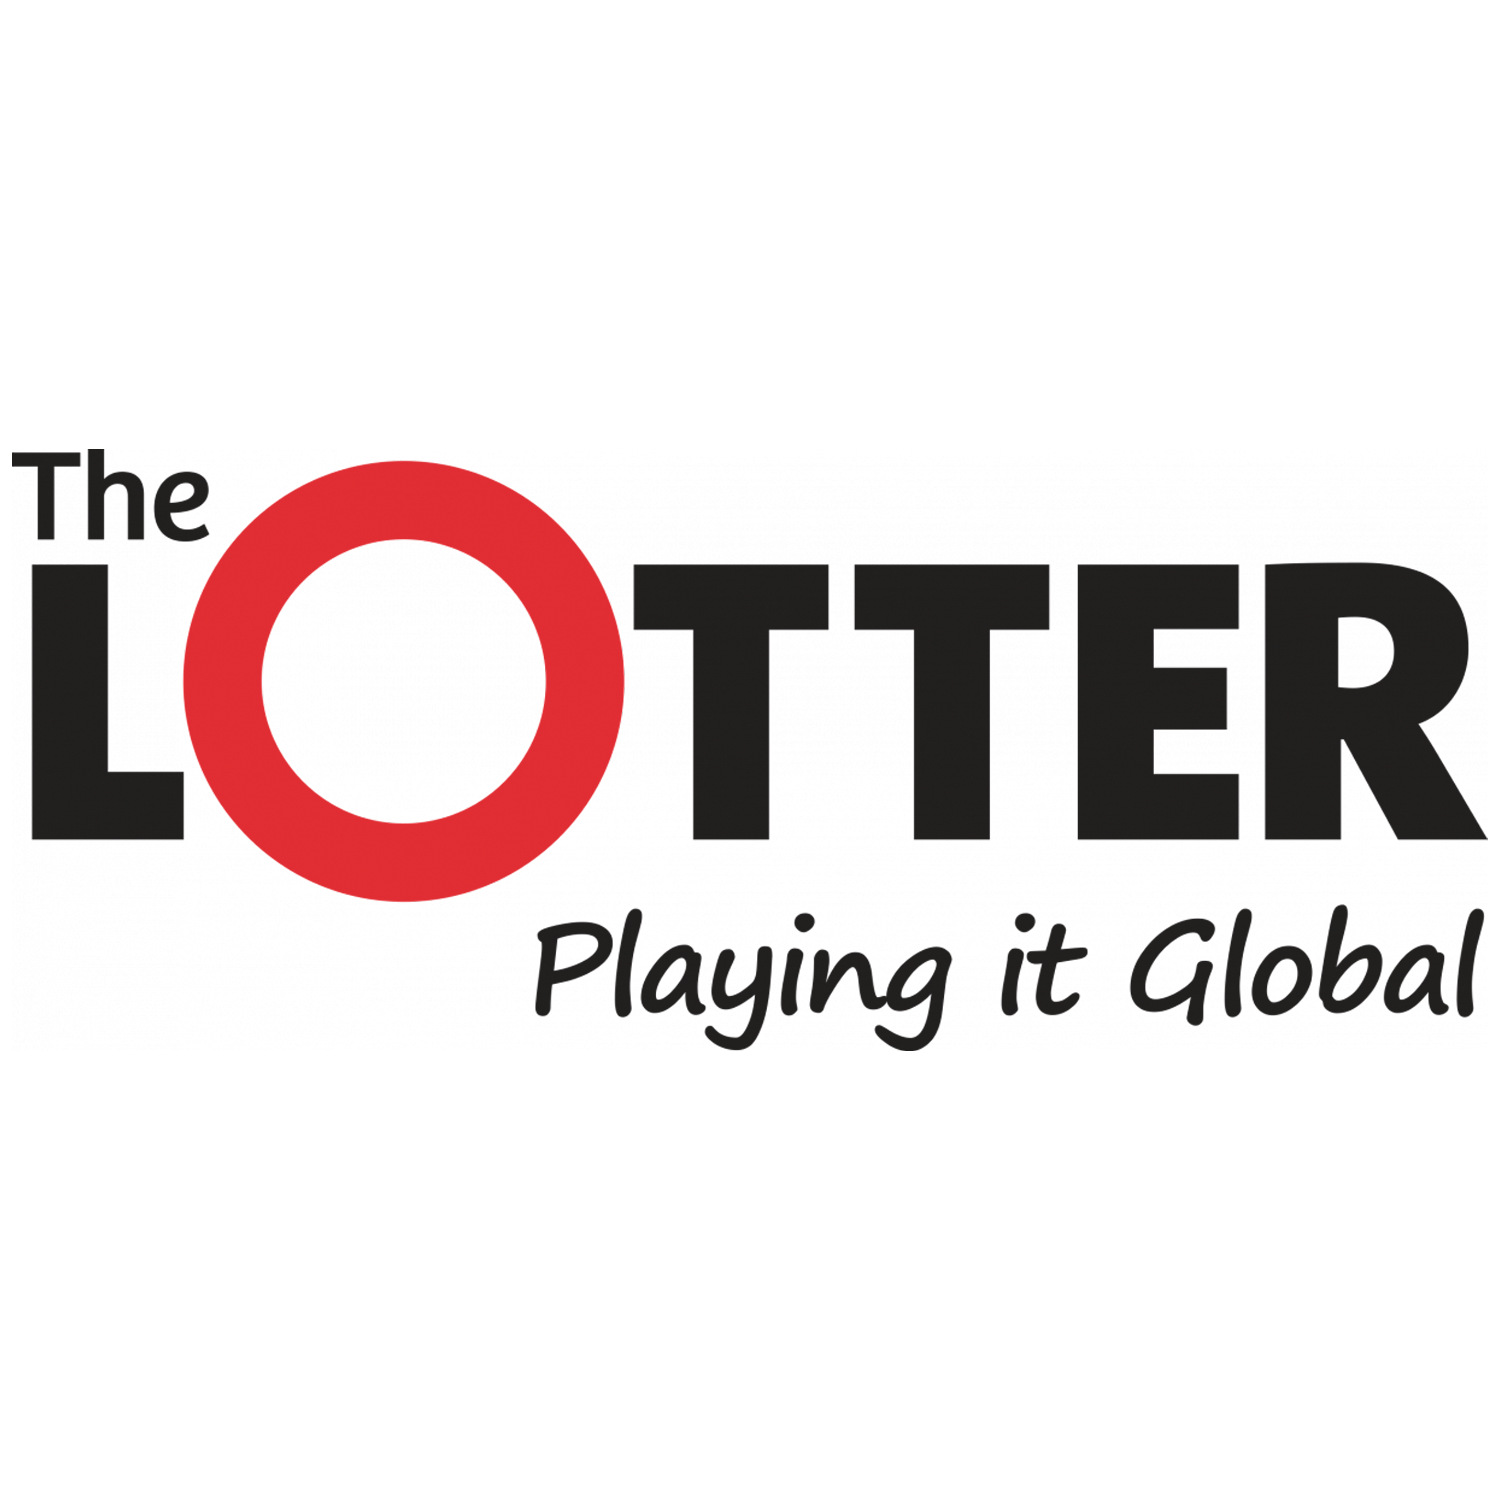 Learn what lotteries you can buy on TheLotter and how to do it.